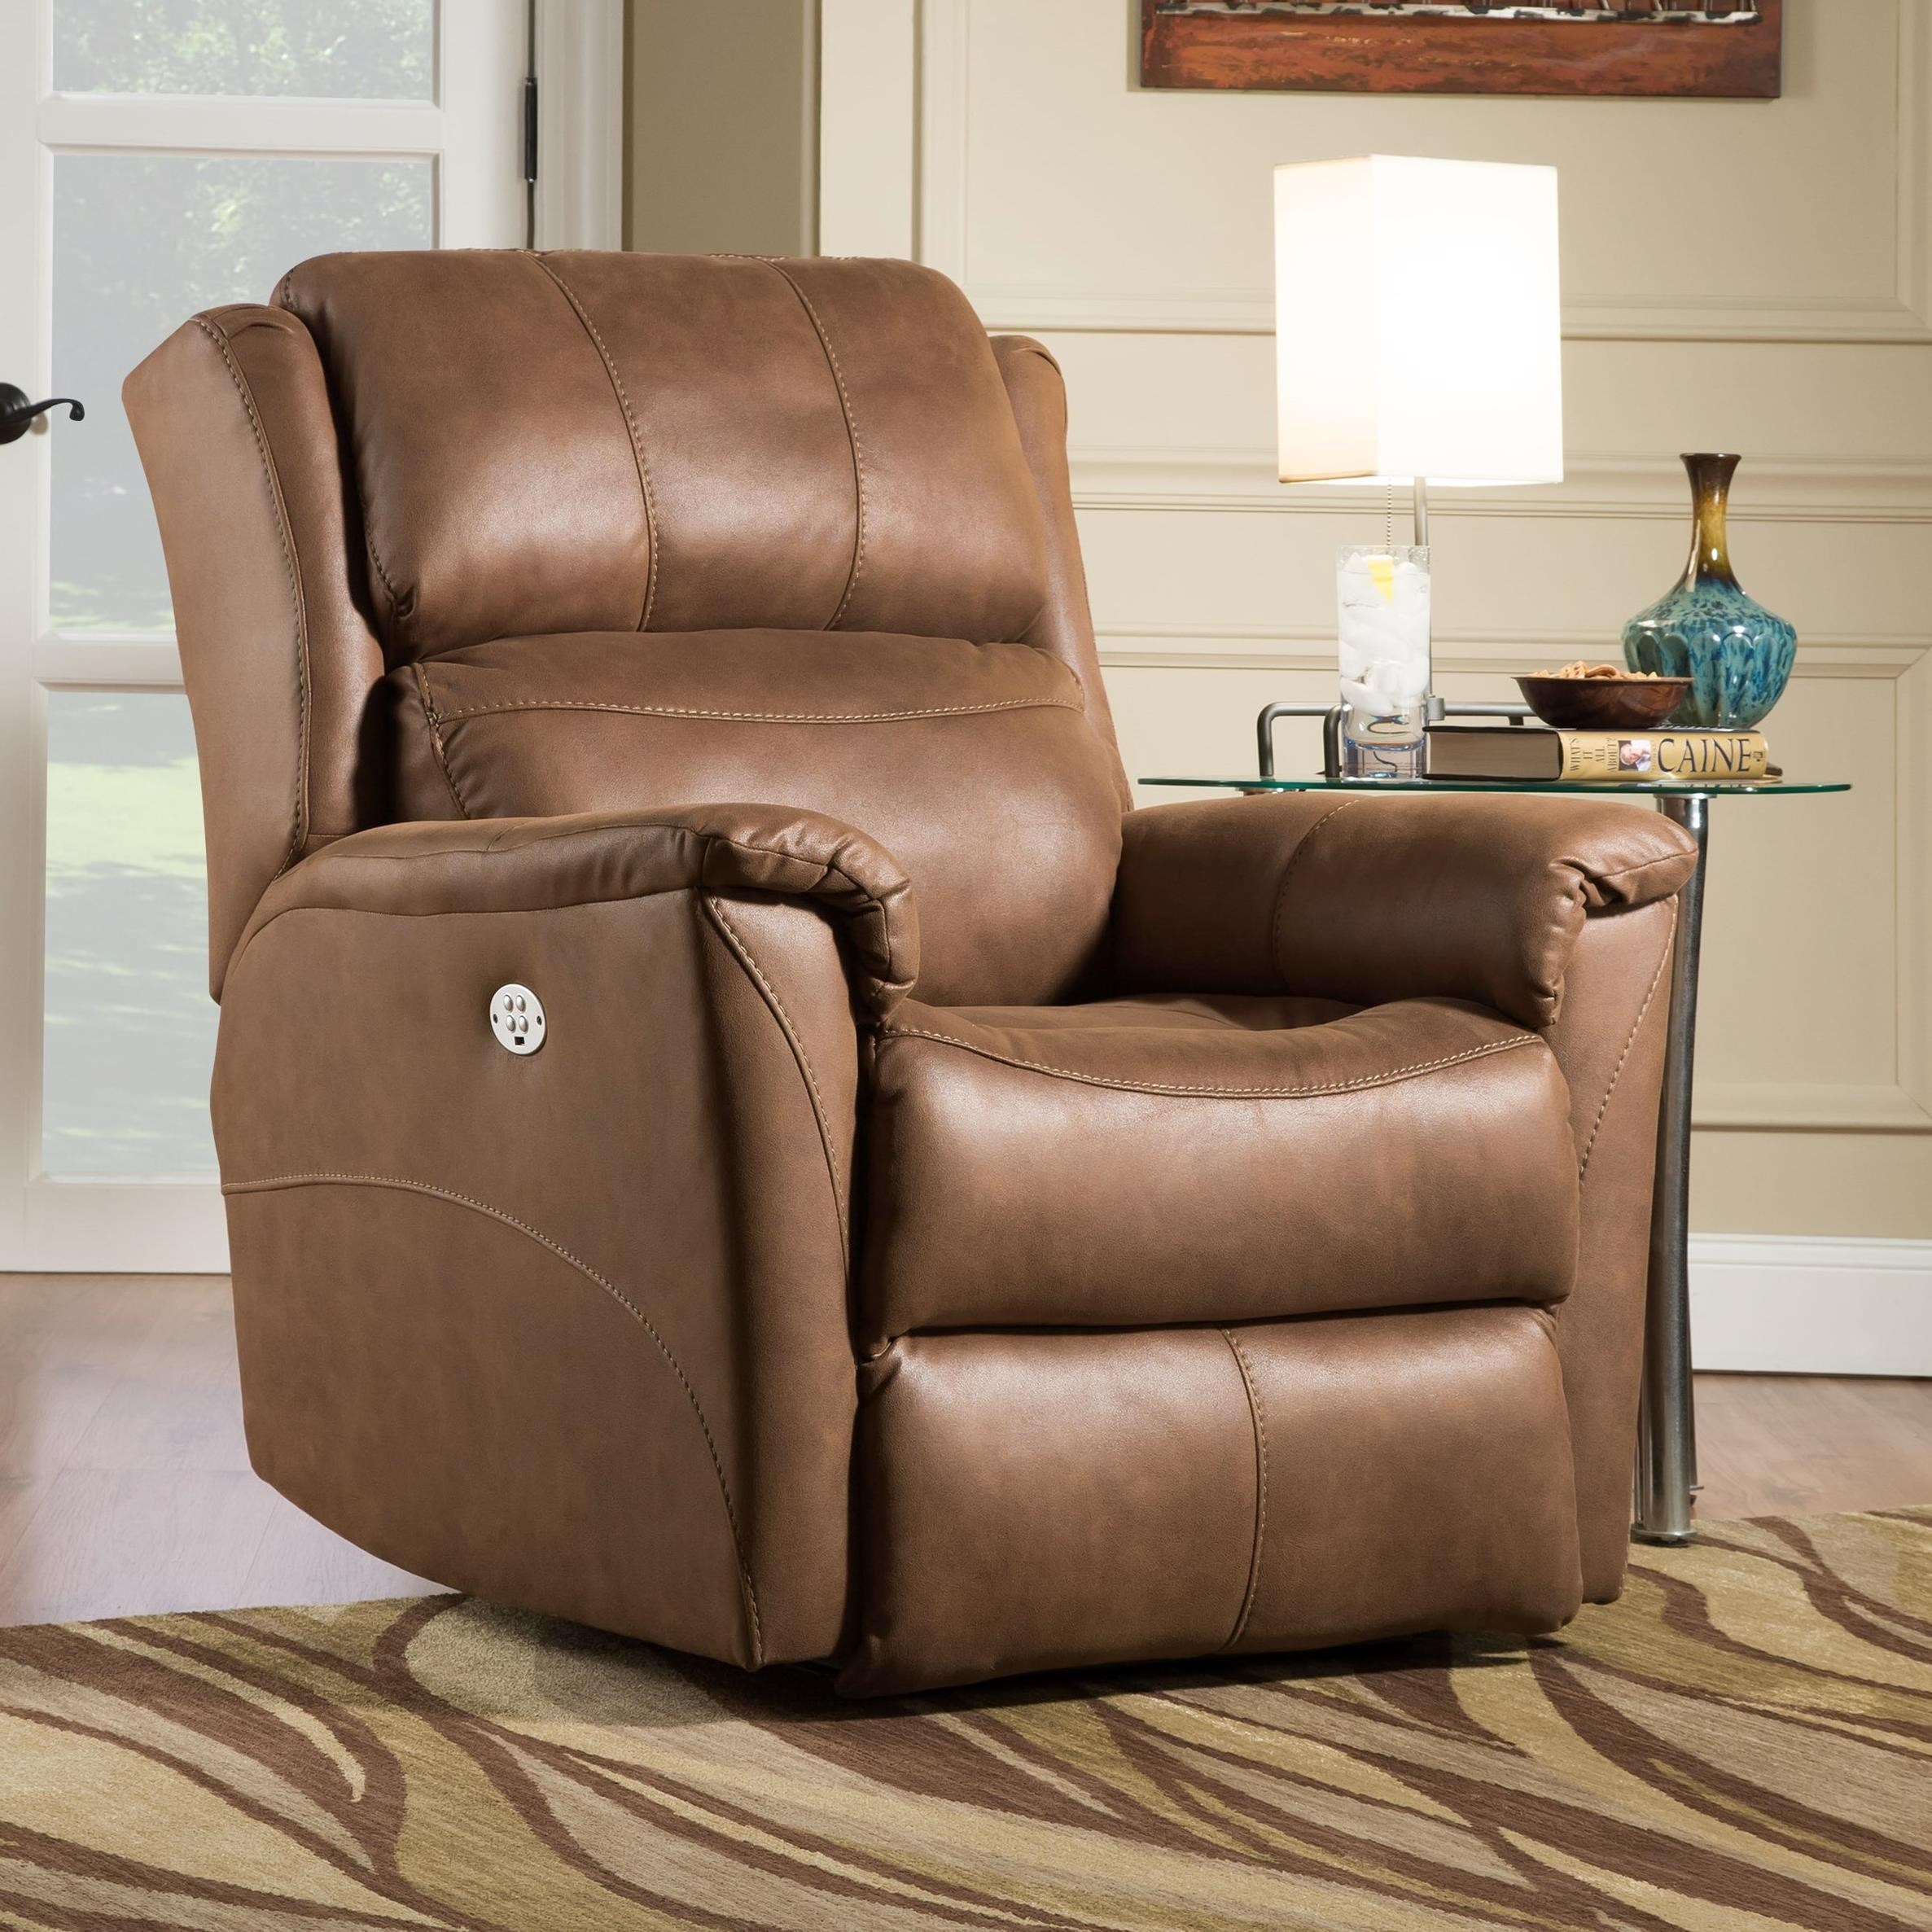 Shimmer Power Headrest Lift Recliner w/ SoCozi by Southern Motion at Sparks HomeStore